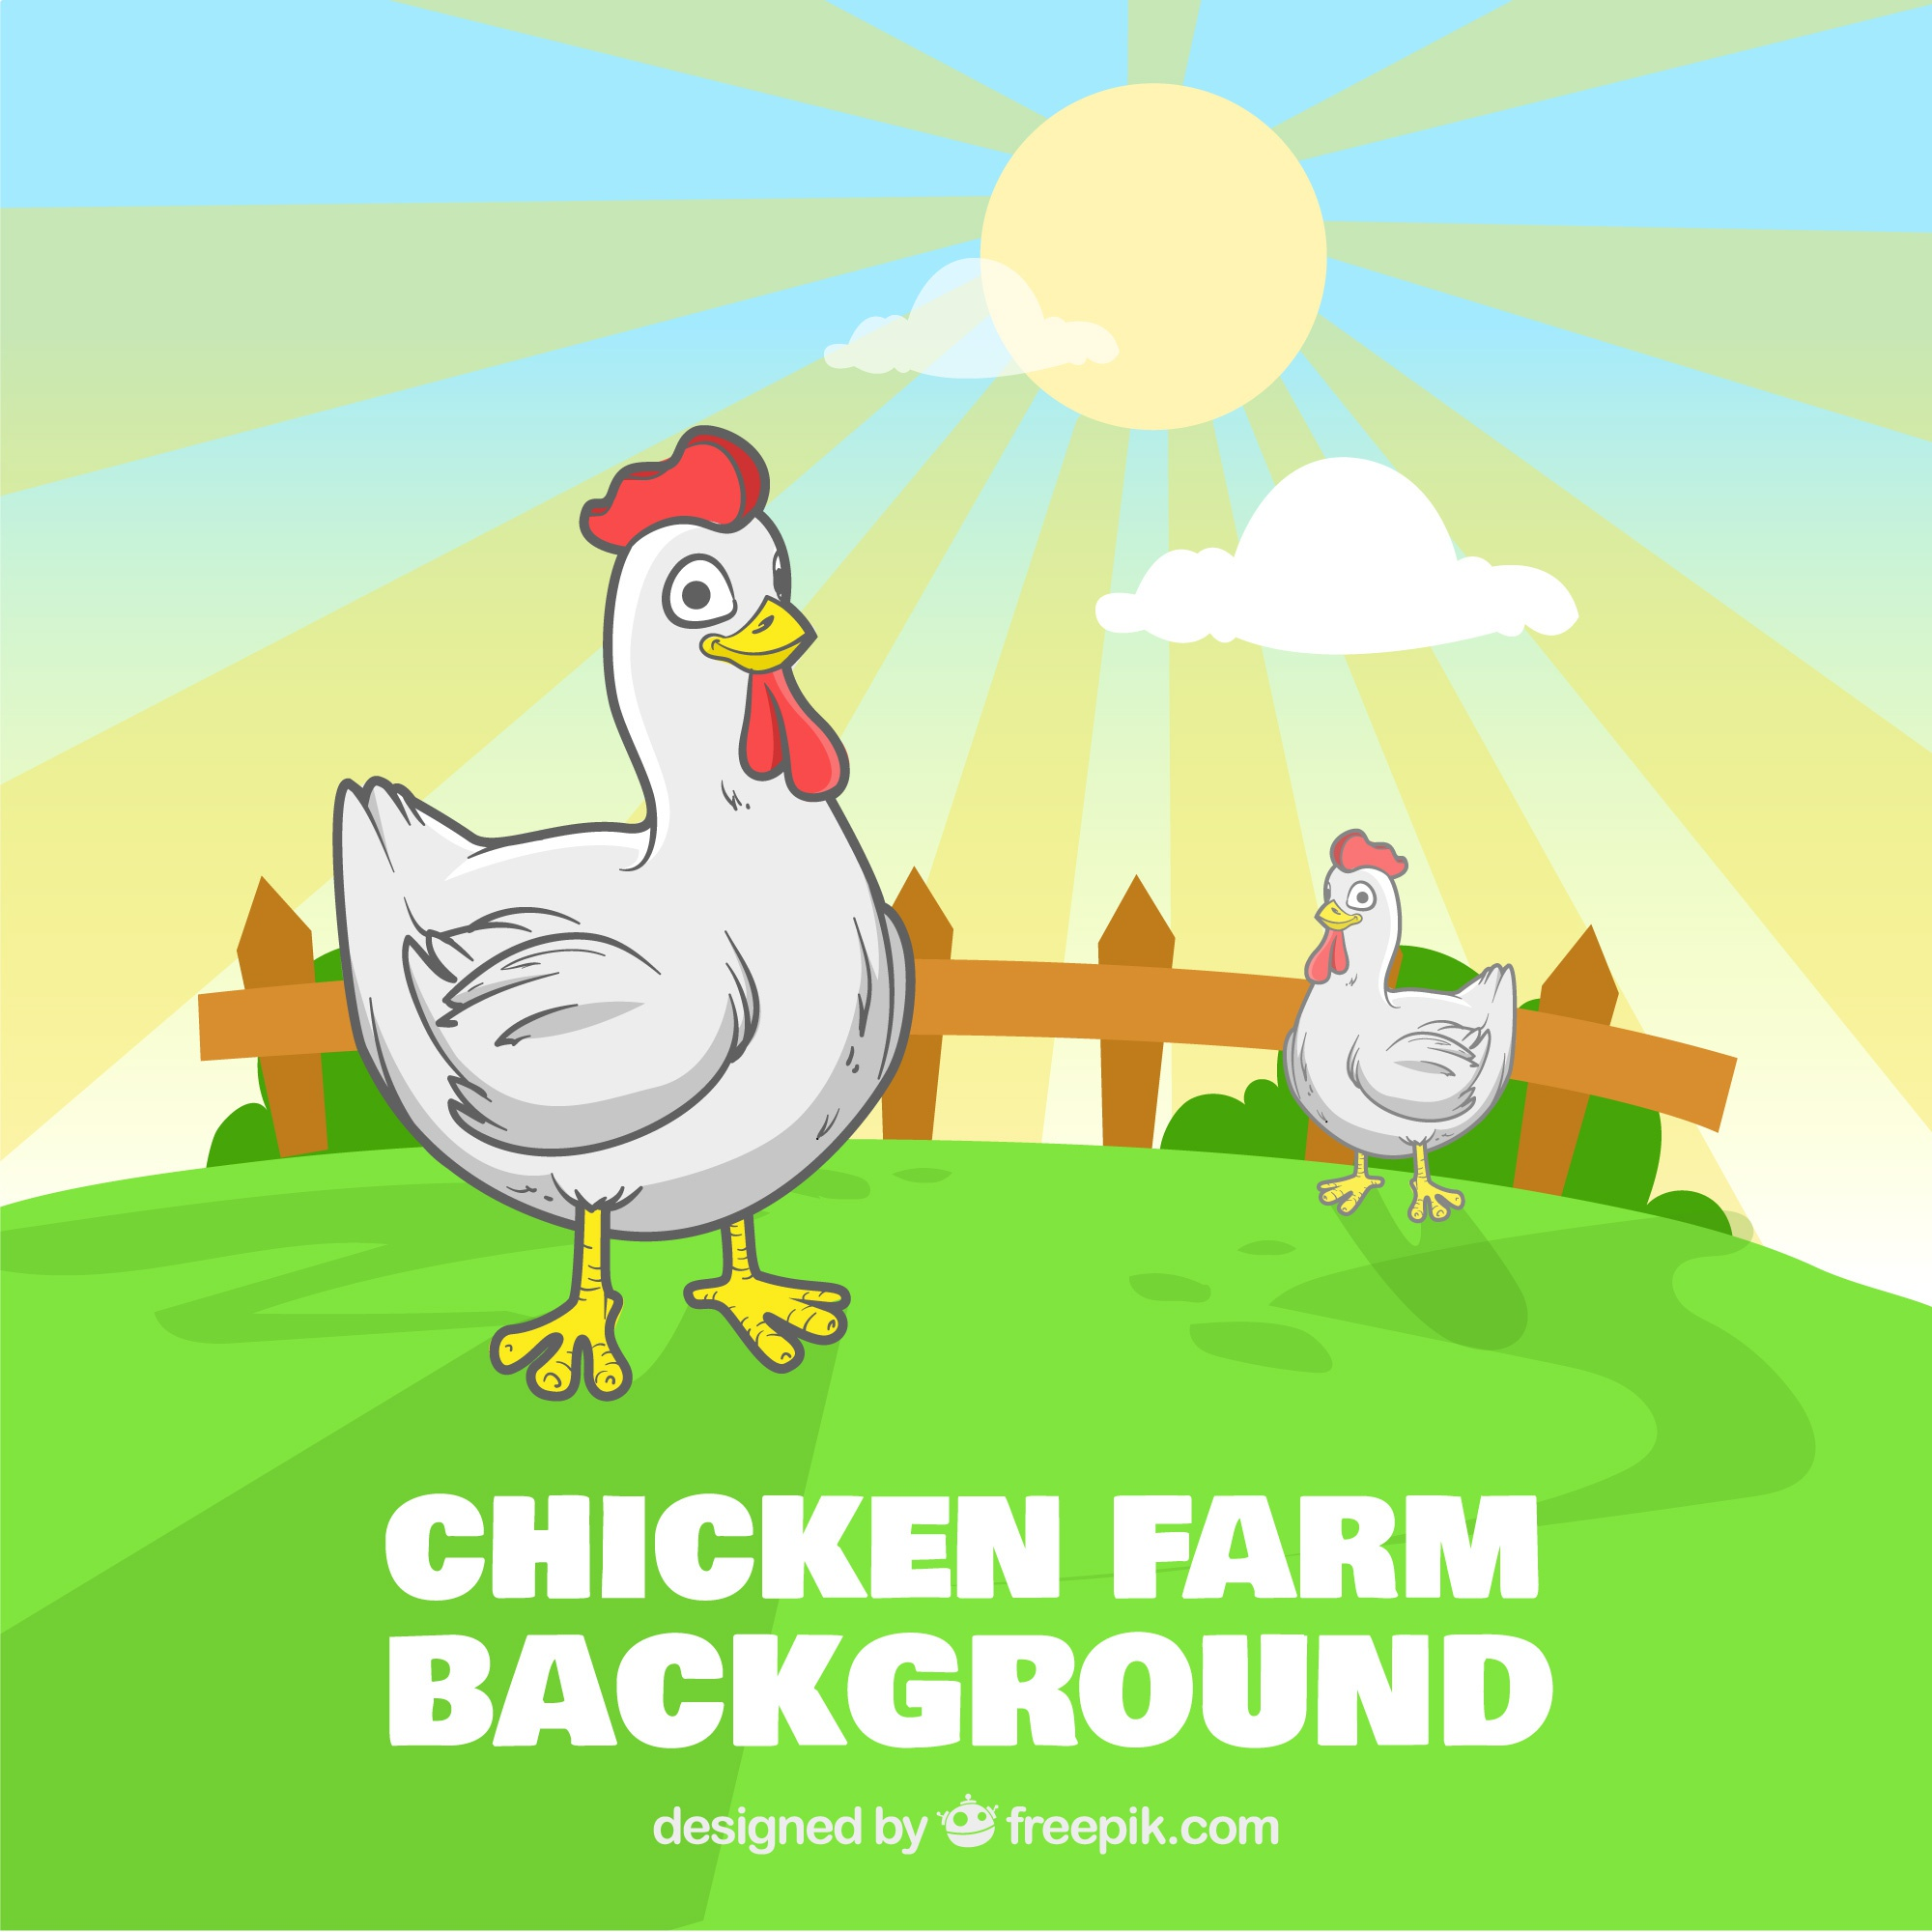 Smiley chicken farm background